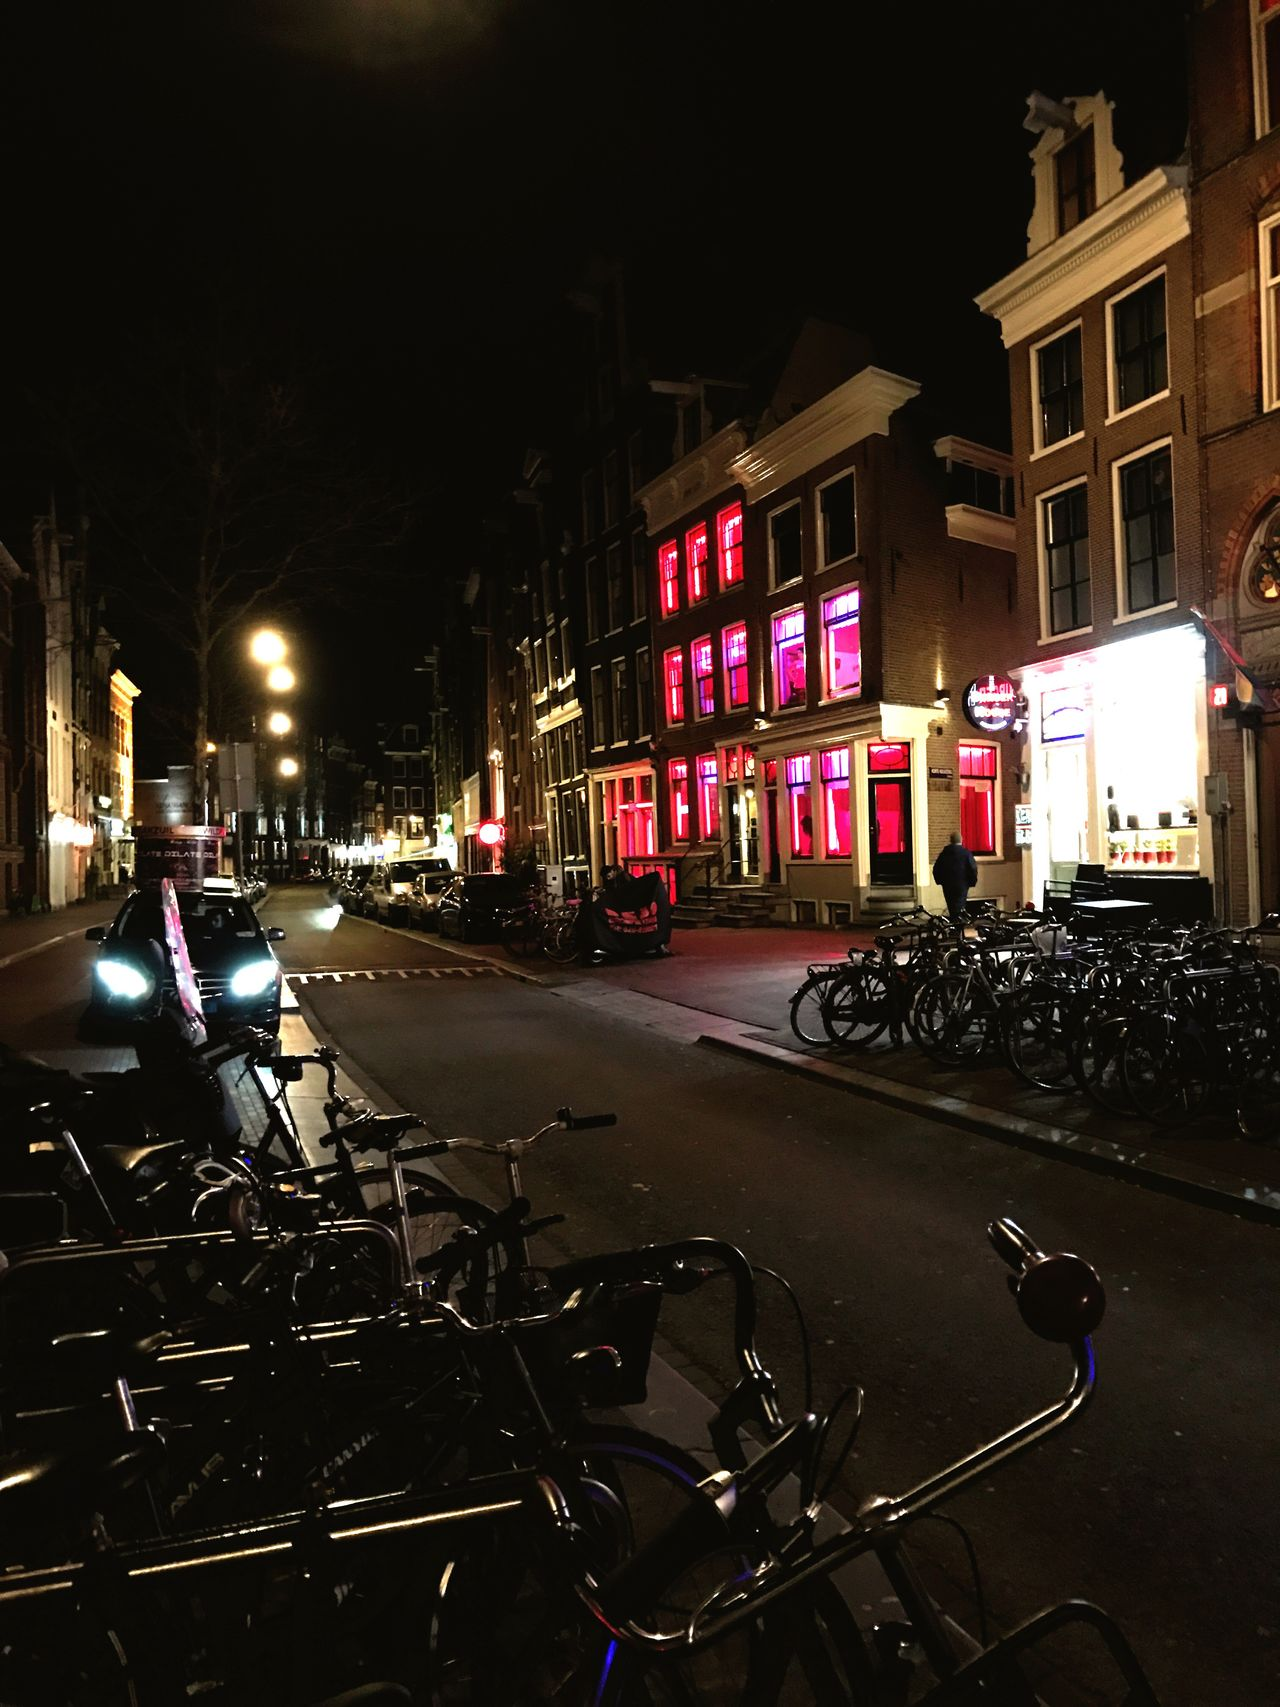 Illuminated City Night Transportation Street Building Exterior Architecture Built Structure Mode Of Transport City Street Travel Destinations Outdoors Land Vehicle Road No People Sky Red Light For Rent Amsterdam Amsterdamcity Amsterdam Centraal